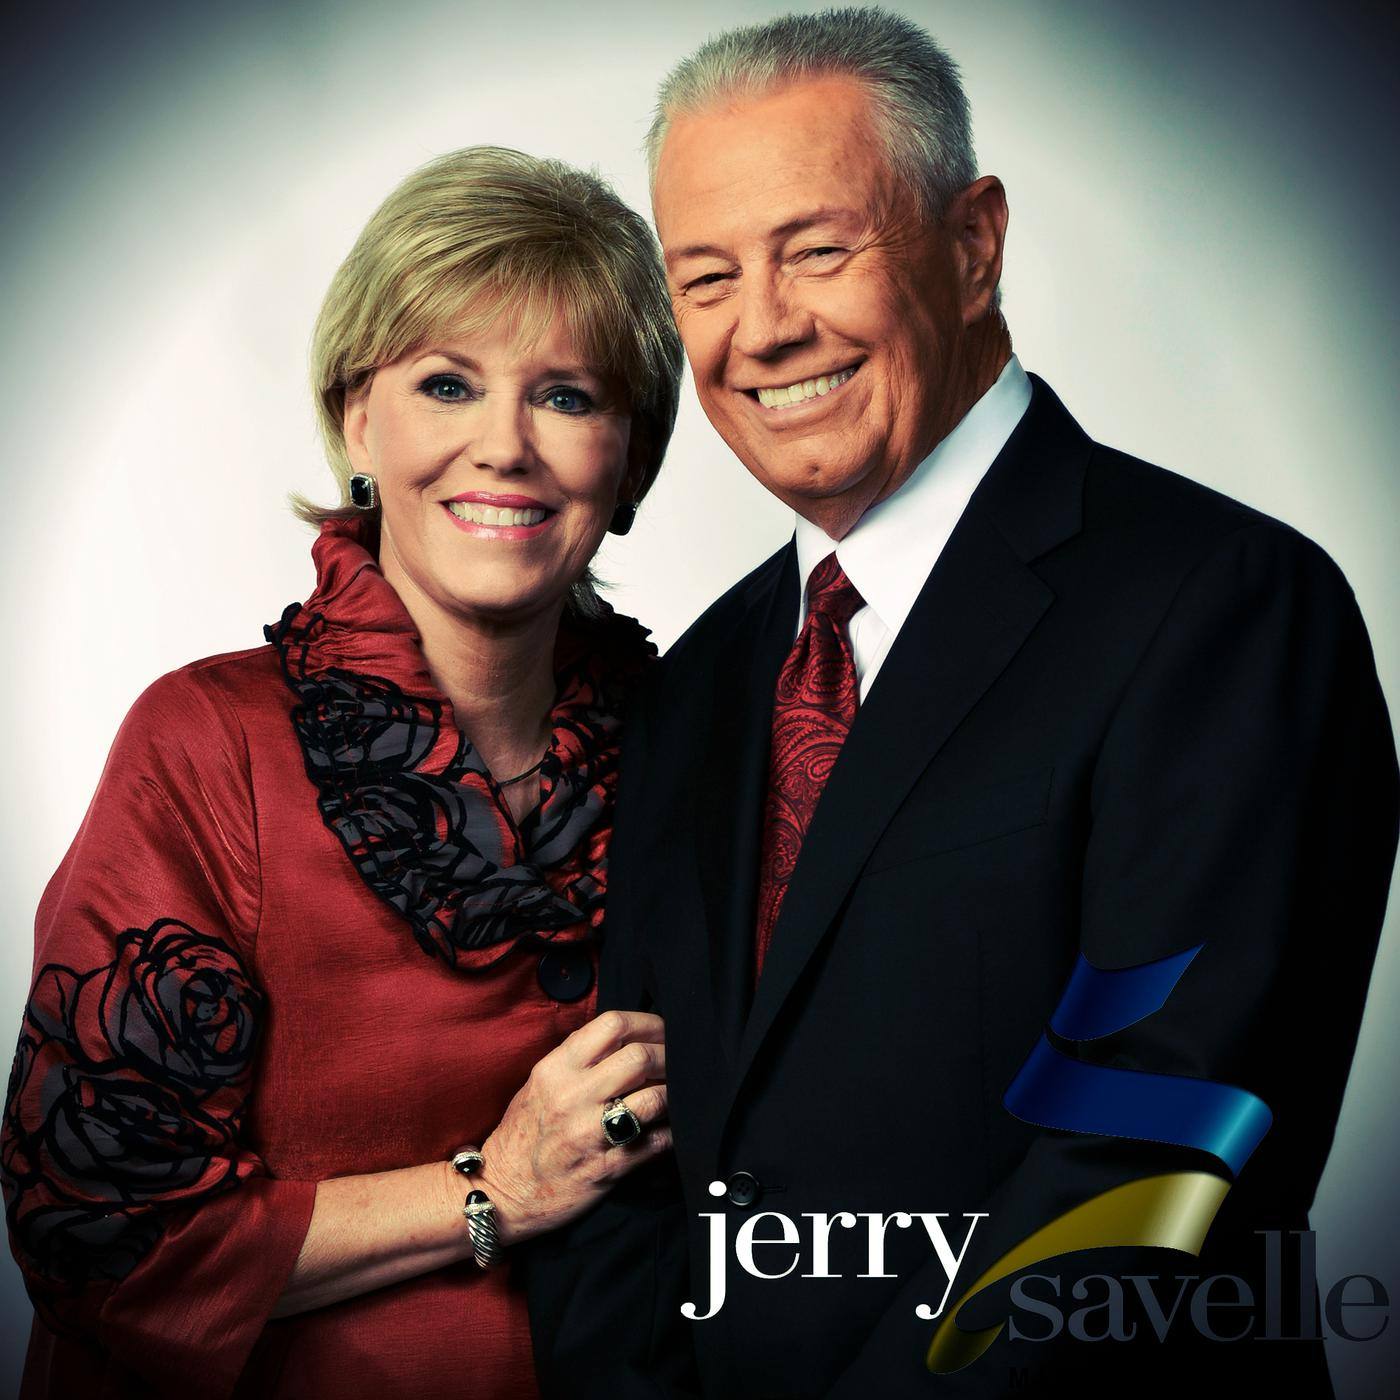 Jerry Savelle Ministries Audio Podcast - Jerry Savelle